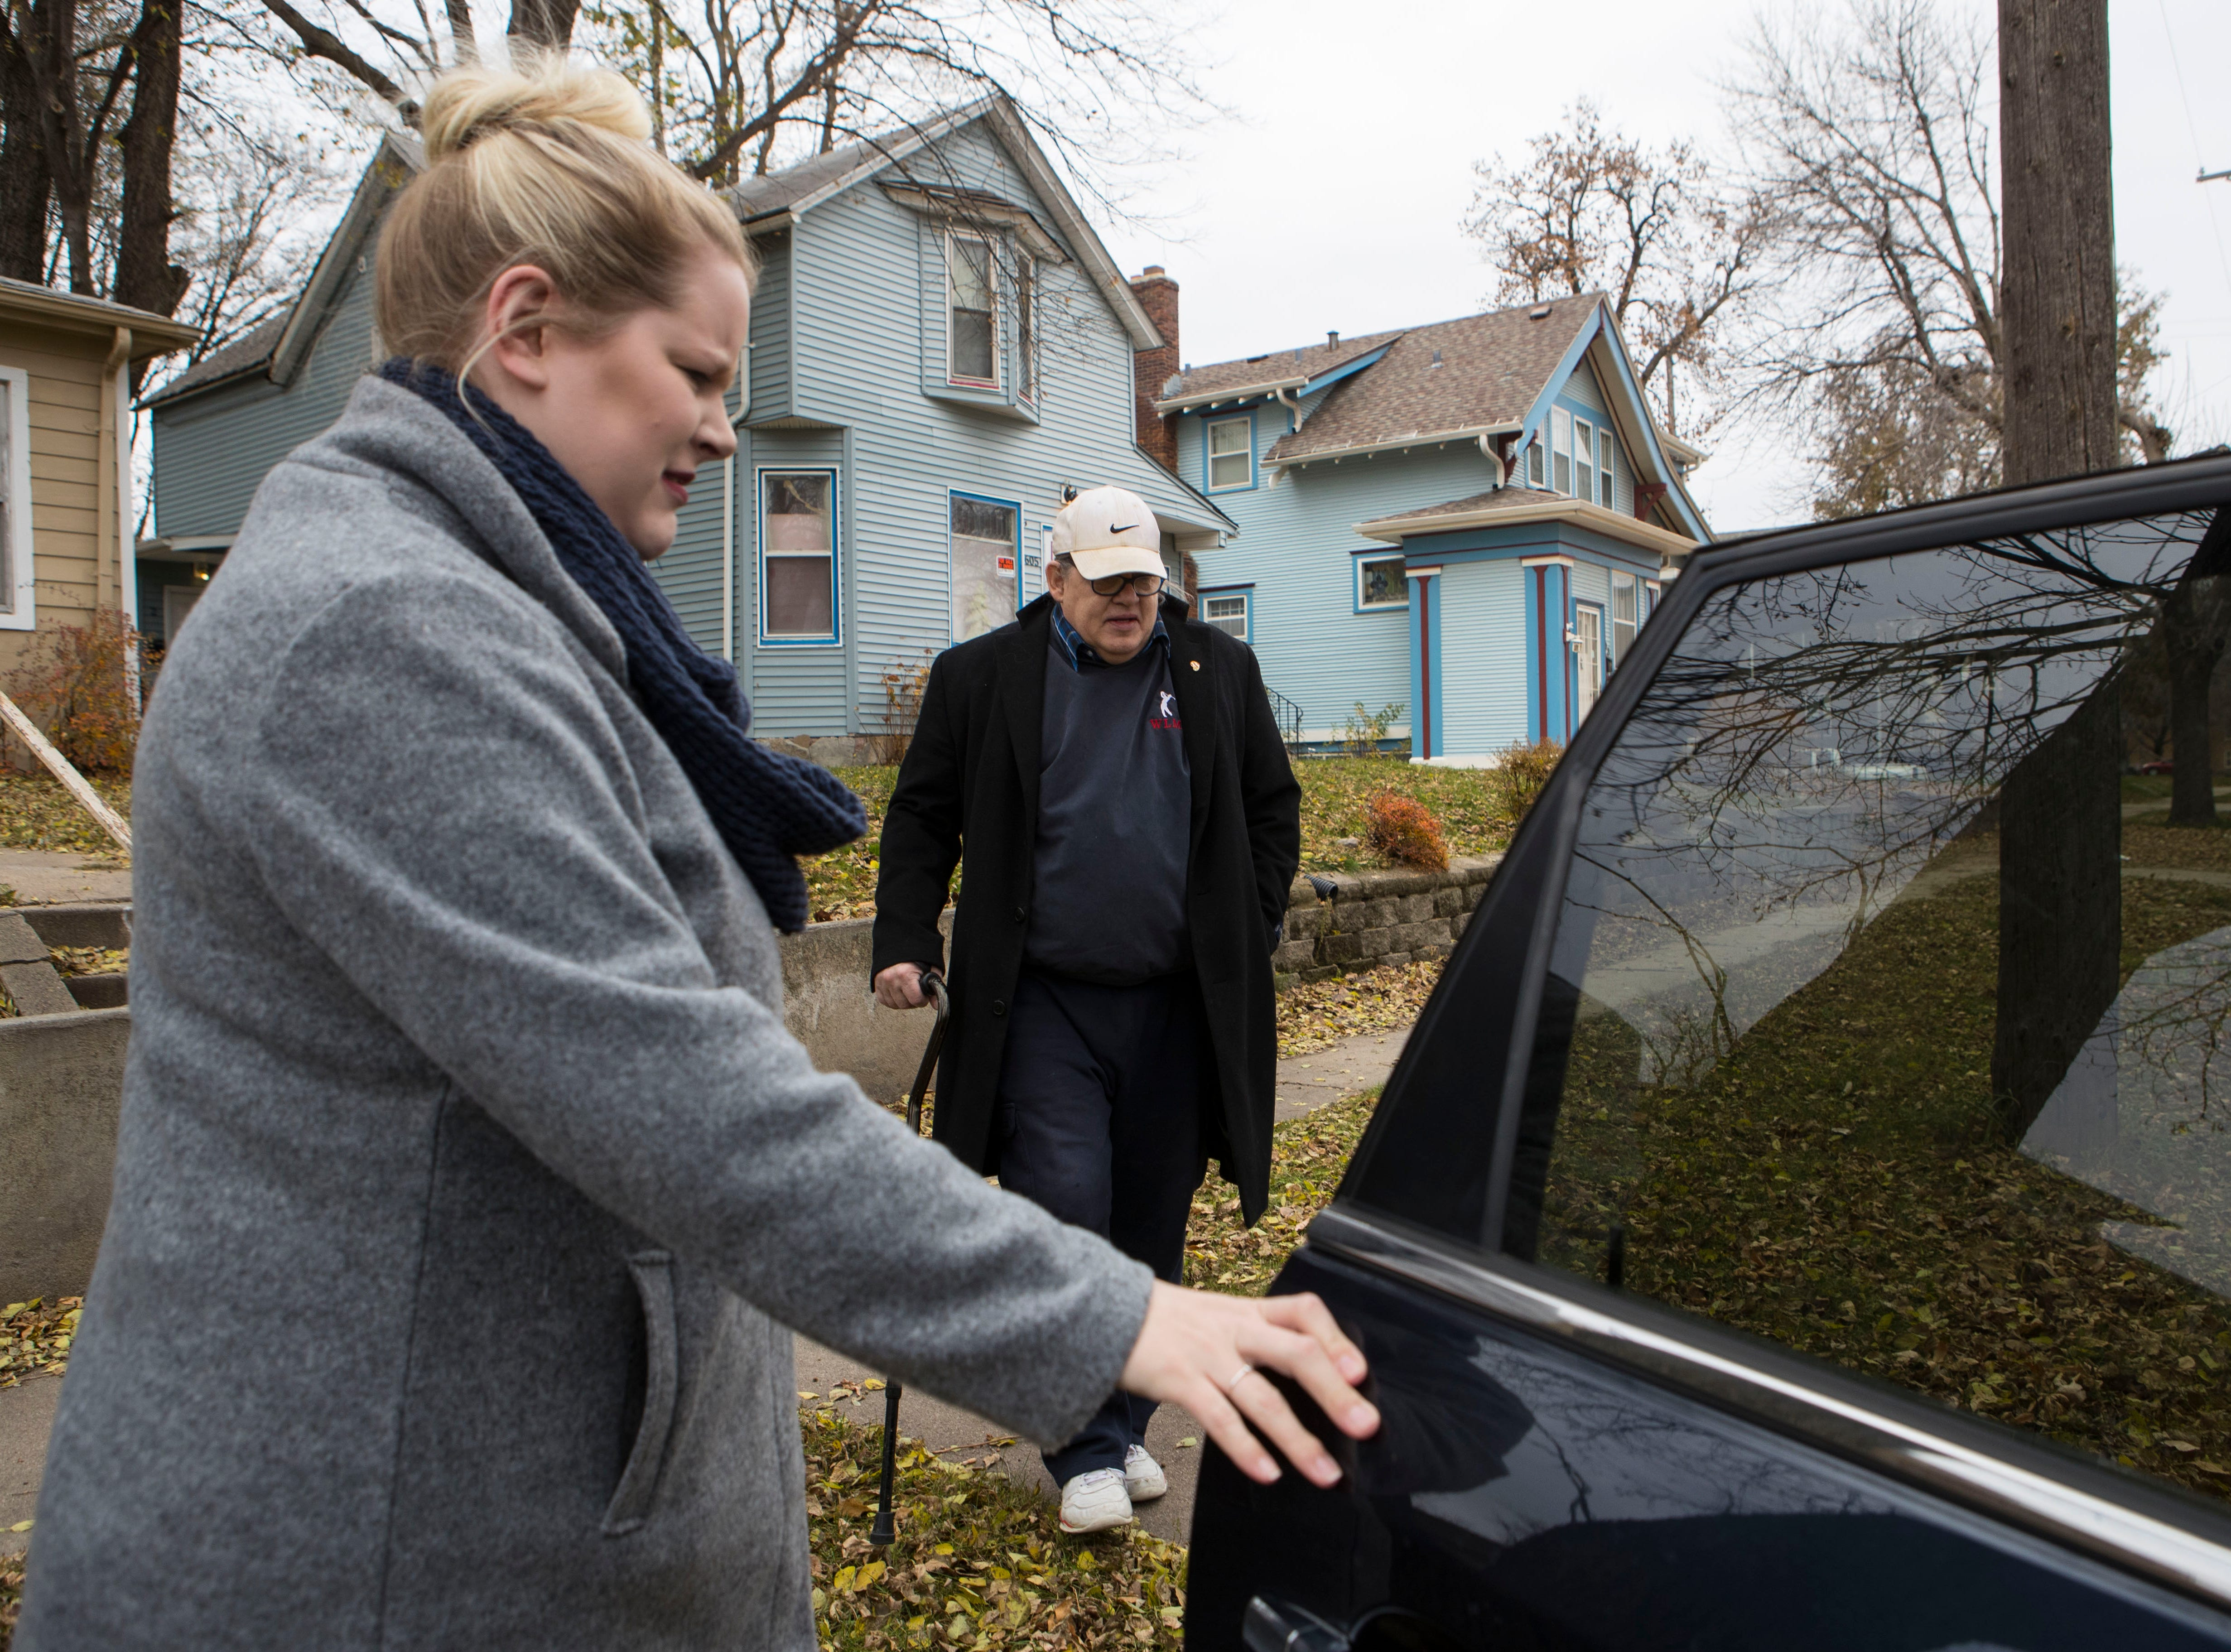 Kirsten Wichern, ACLU volunteer, opens the door for Larry Loebig, in Sioux Falls, S.D., Tuesday, Nov. 6, 2018. The ACLU is offering free rides to people to their voting centers.